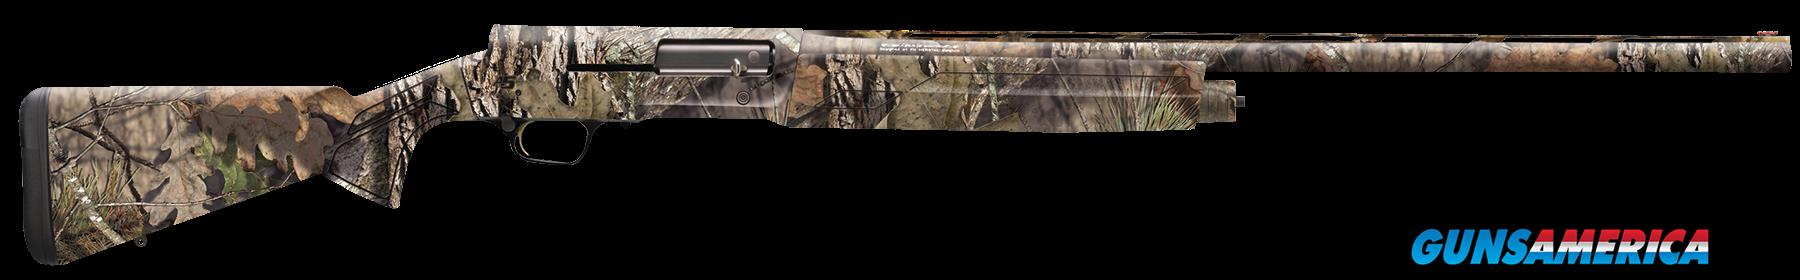 "Browning 0118333003 A5 Semi-Automatic 12 Gauge 30"" 3"" Syn Stk Mossy Oak Break-Up Country  Guns > Shotguns > Browning Shotguns > Autoloaders > Hunting"